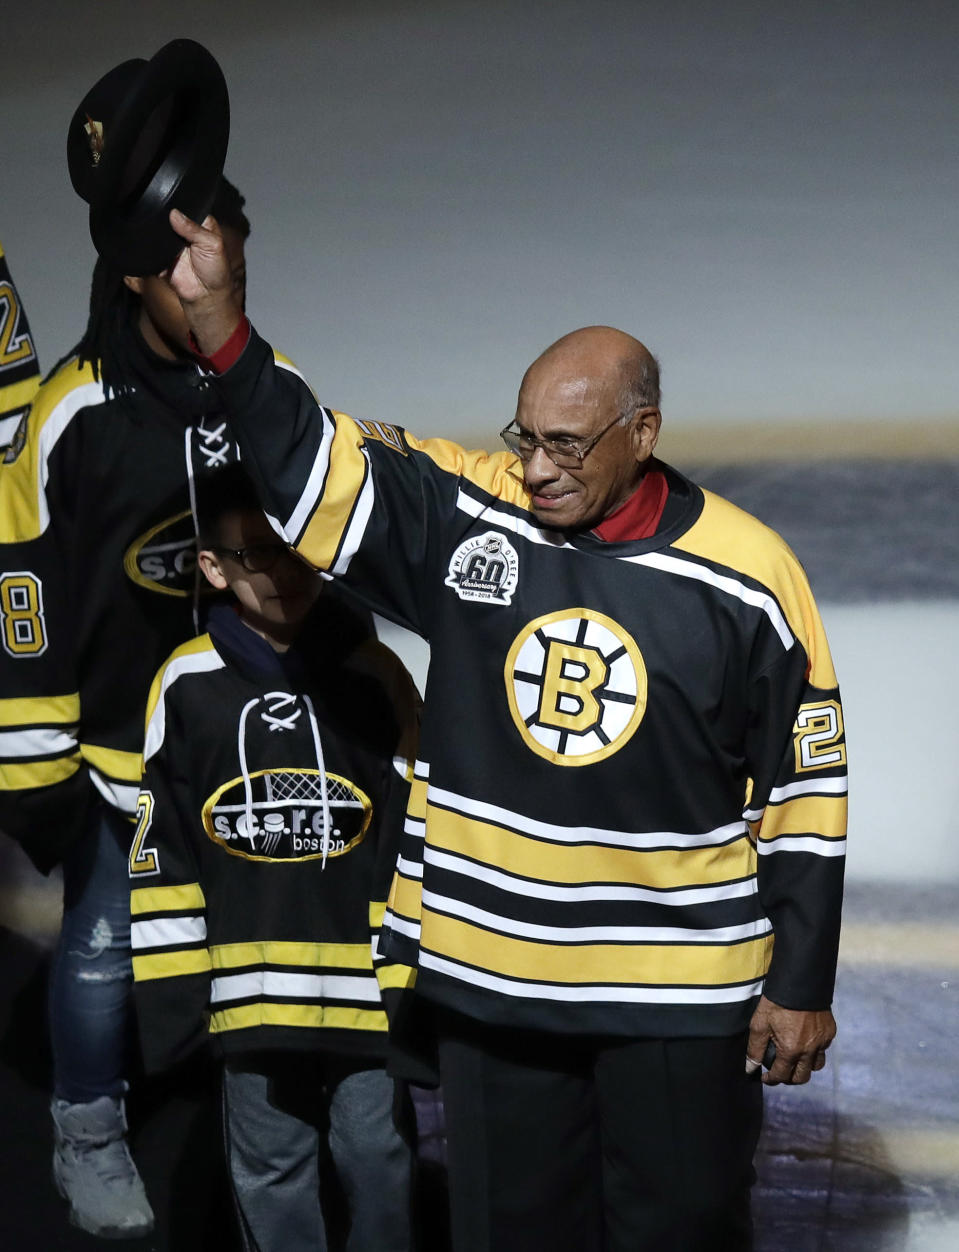 FILE - Former Boston Bruins' Willie O'Ree tips his hat as he is honored prior to the first period of an NHL hockey game against the Montreal Canadiens in Boston, in this Wednesday, Jan. 17, 2018, file photo. The Boston Bruins say they will retire the jersey of Willie O'Ree, who broke the NHL's color barrier. O'Ree will have his No. 22 jersey honored prior to the Bruins' Feb. 18 game against the New Jersey Devils. He became the league's first Black player when he suited up for Boston on Jan. 18, 1958 against the Montreal Canadiens, despite being legally blind in one eye. (AP Photo/Charles Krupa, File)